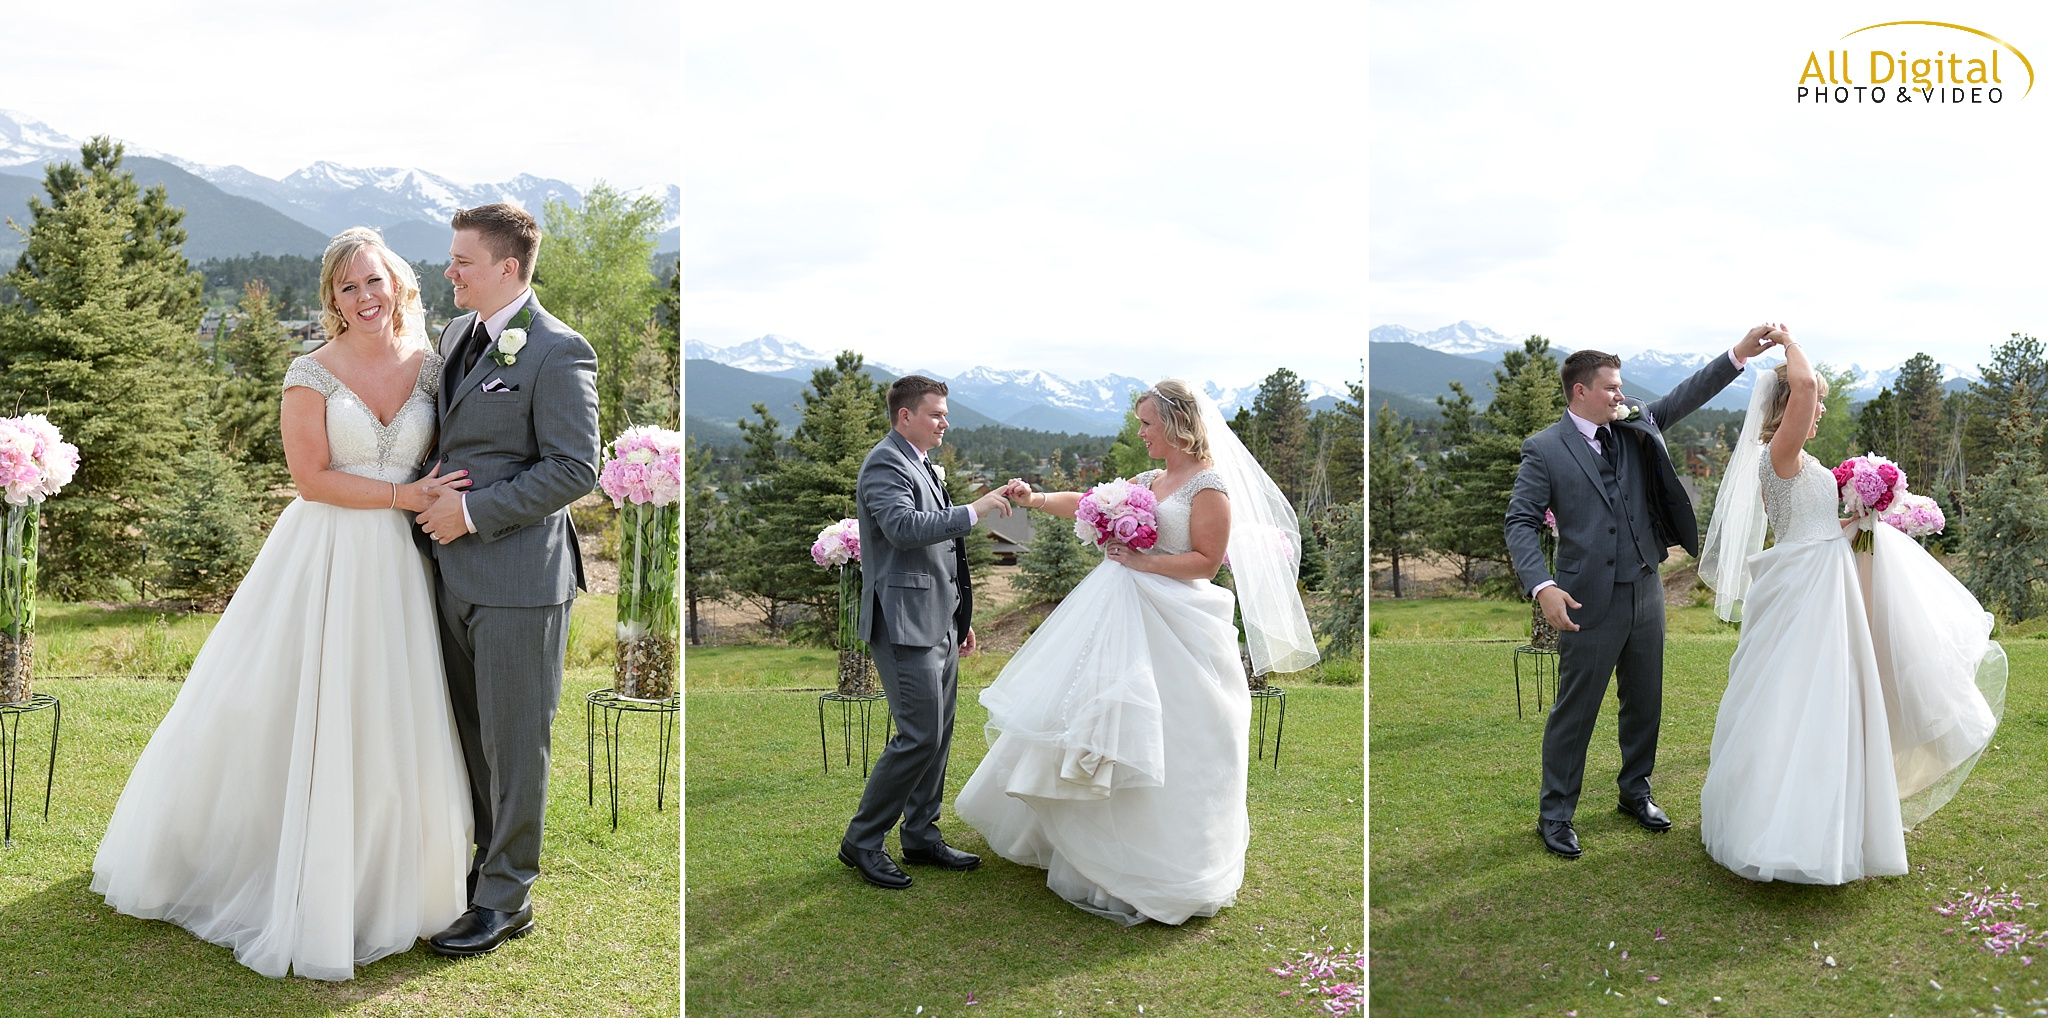 Alison & Brian - Romantic Portraits at the Stanley Hotel in Estes Park, Colorado.